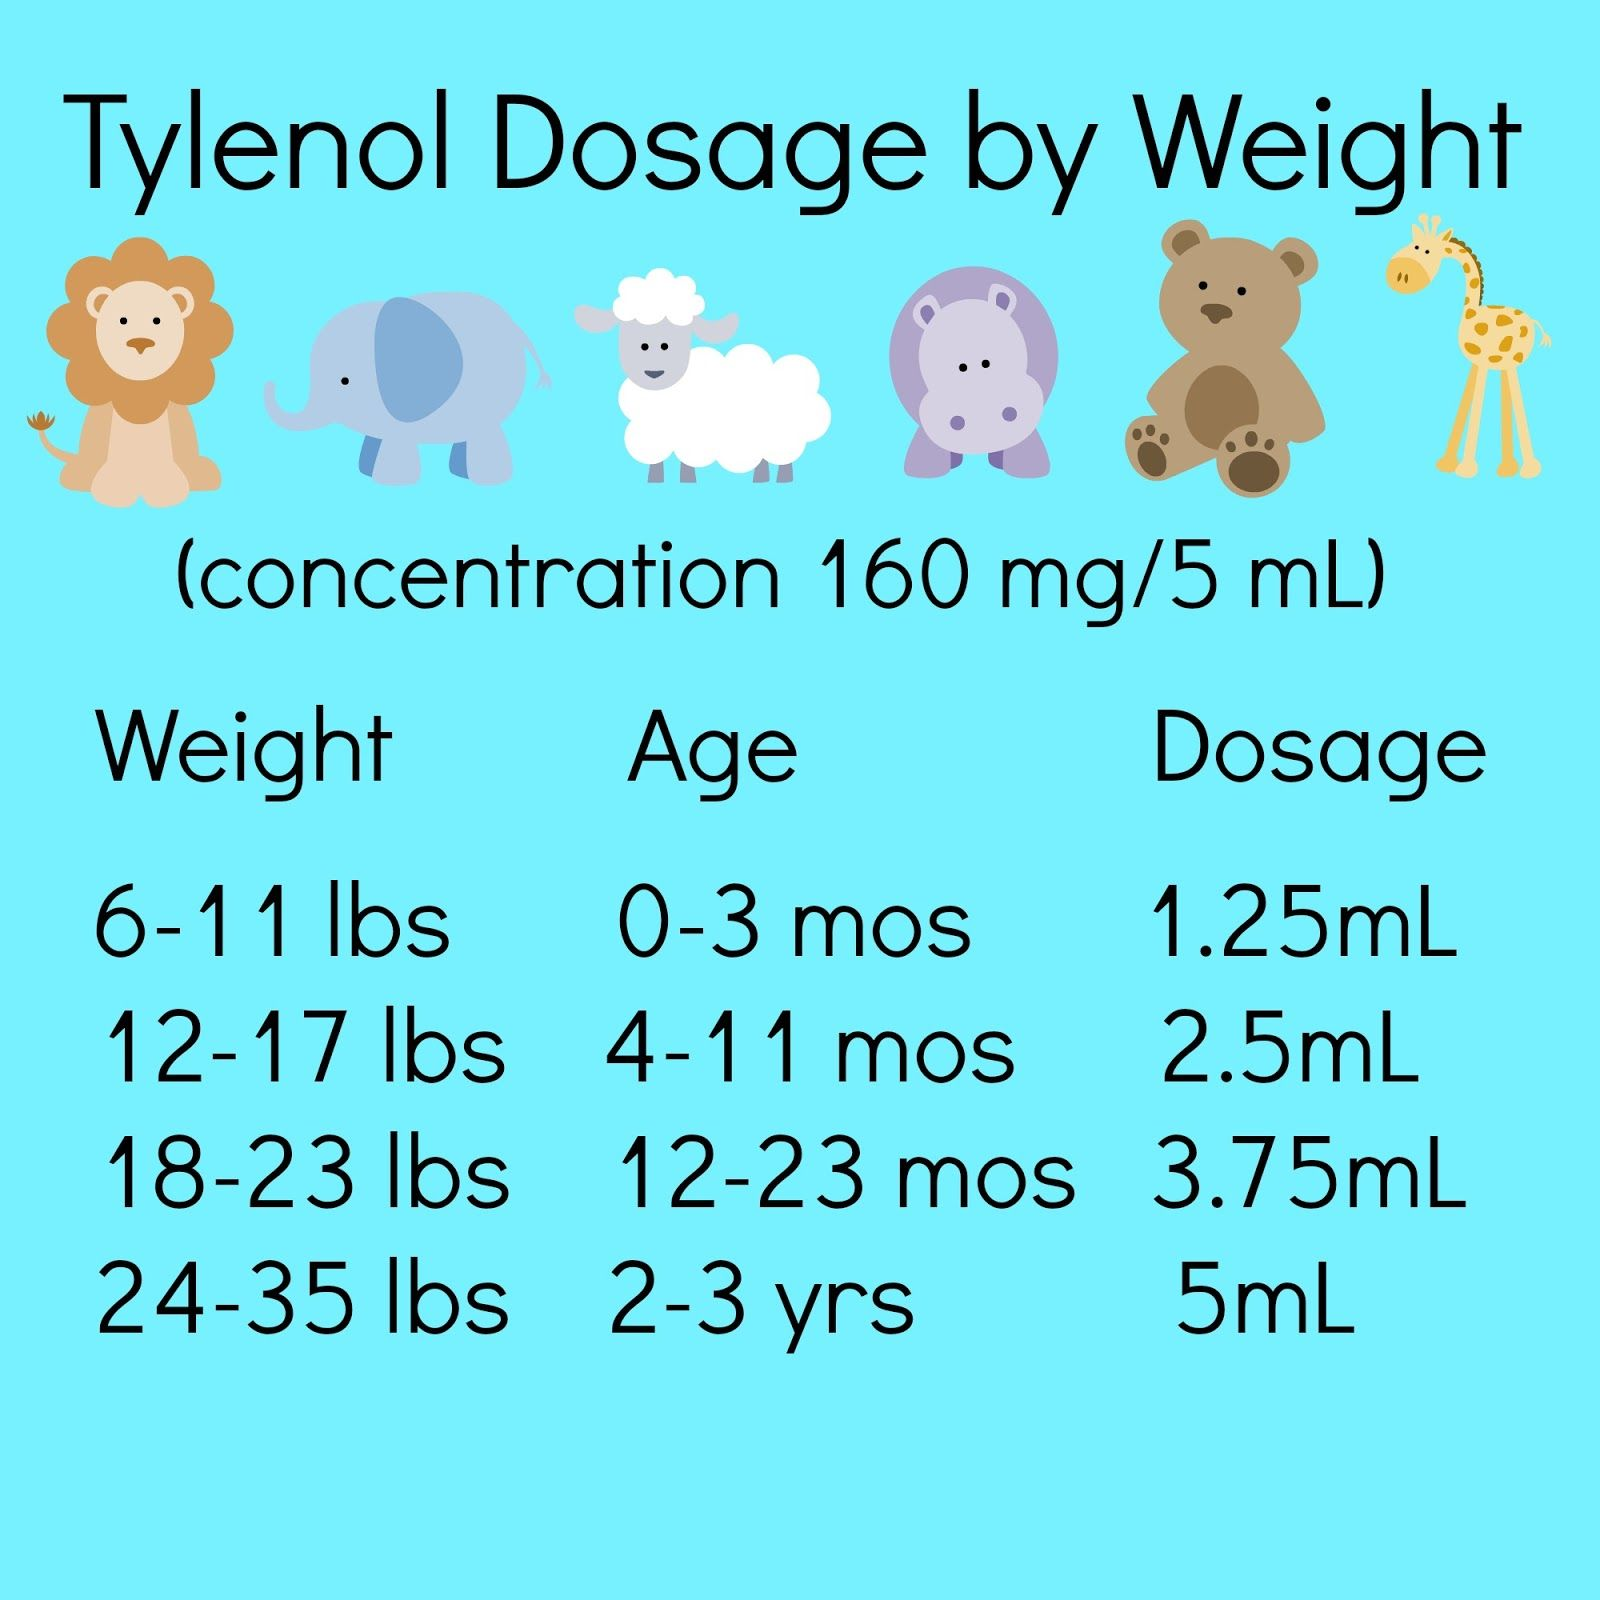 Tylenol dosage for babies and toddlers new concentration via tylenol dosage chart by weight print this out and keep it with your childrens tylenol nvjuhfo Images